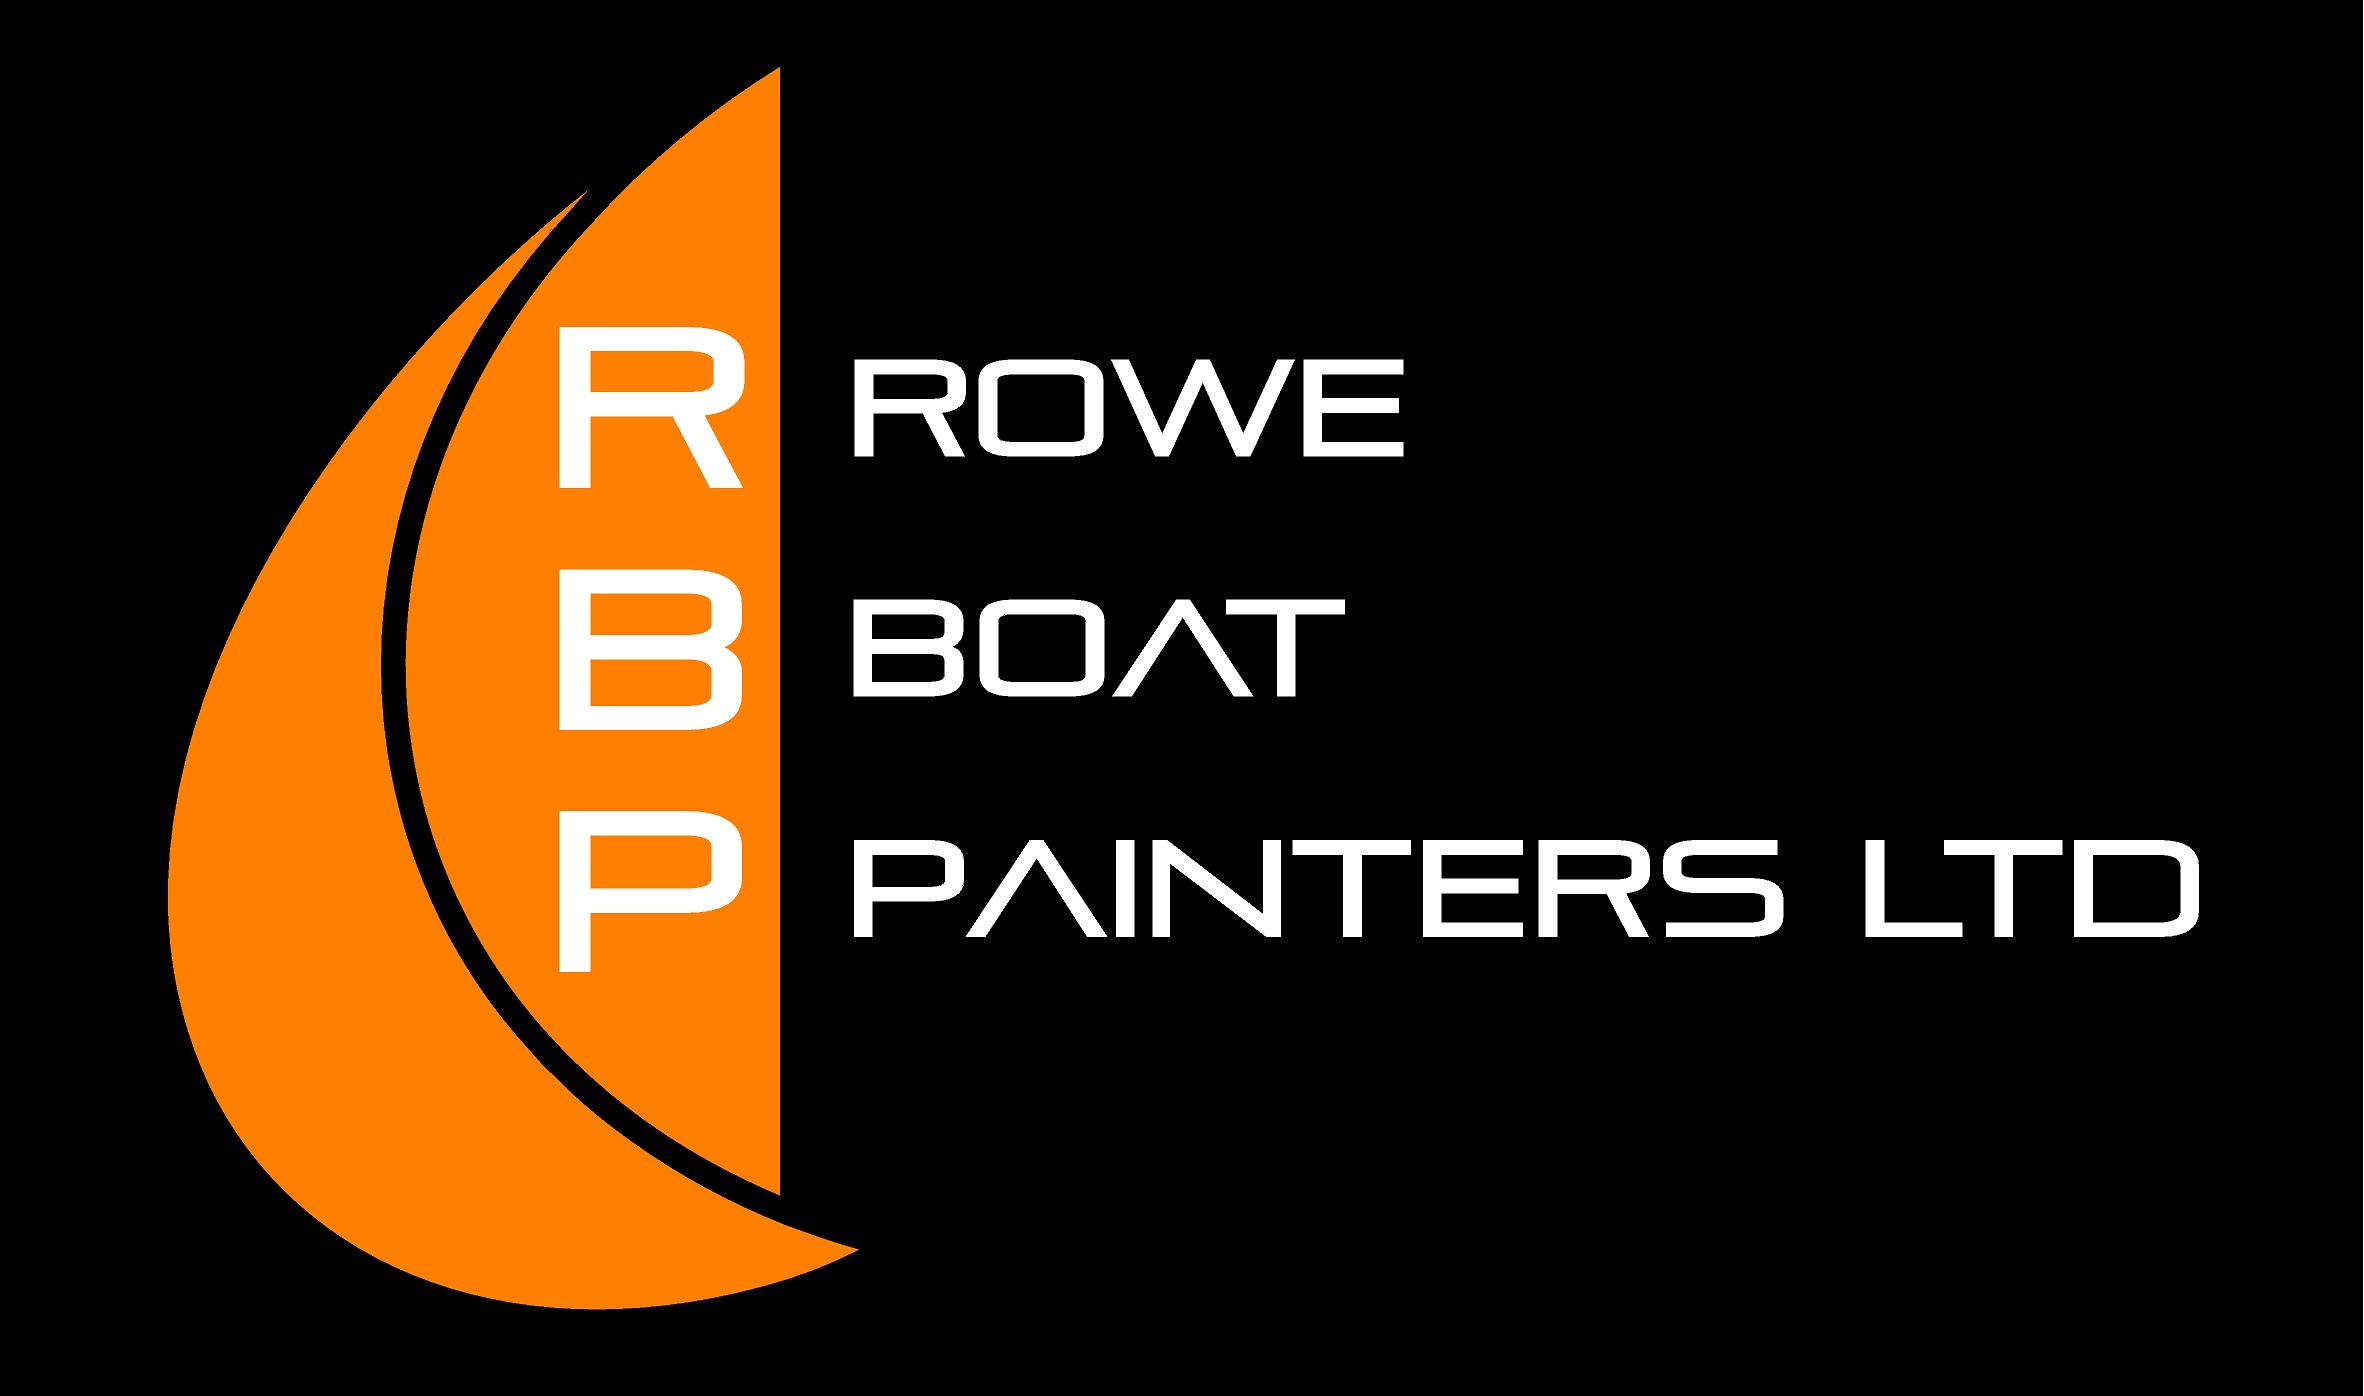 Roweboat Painters